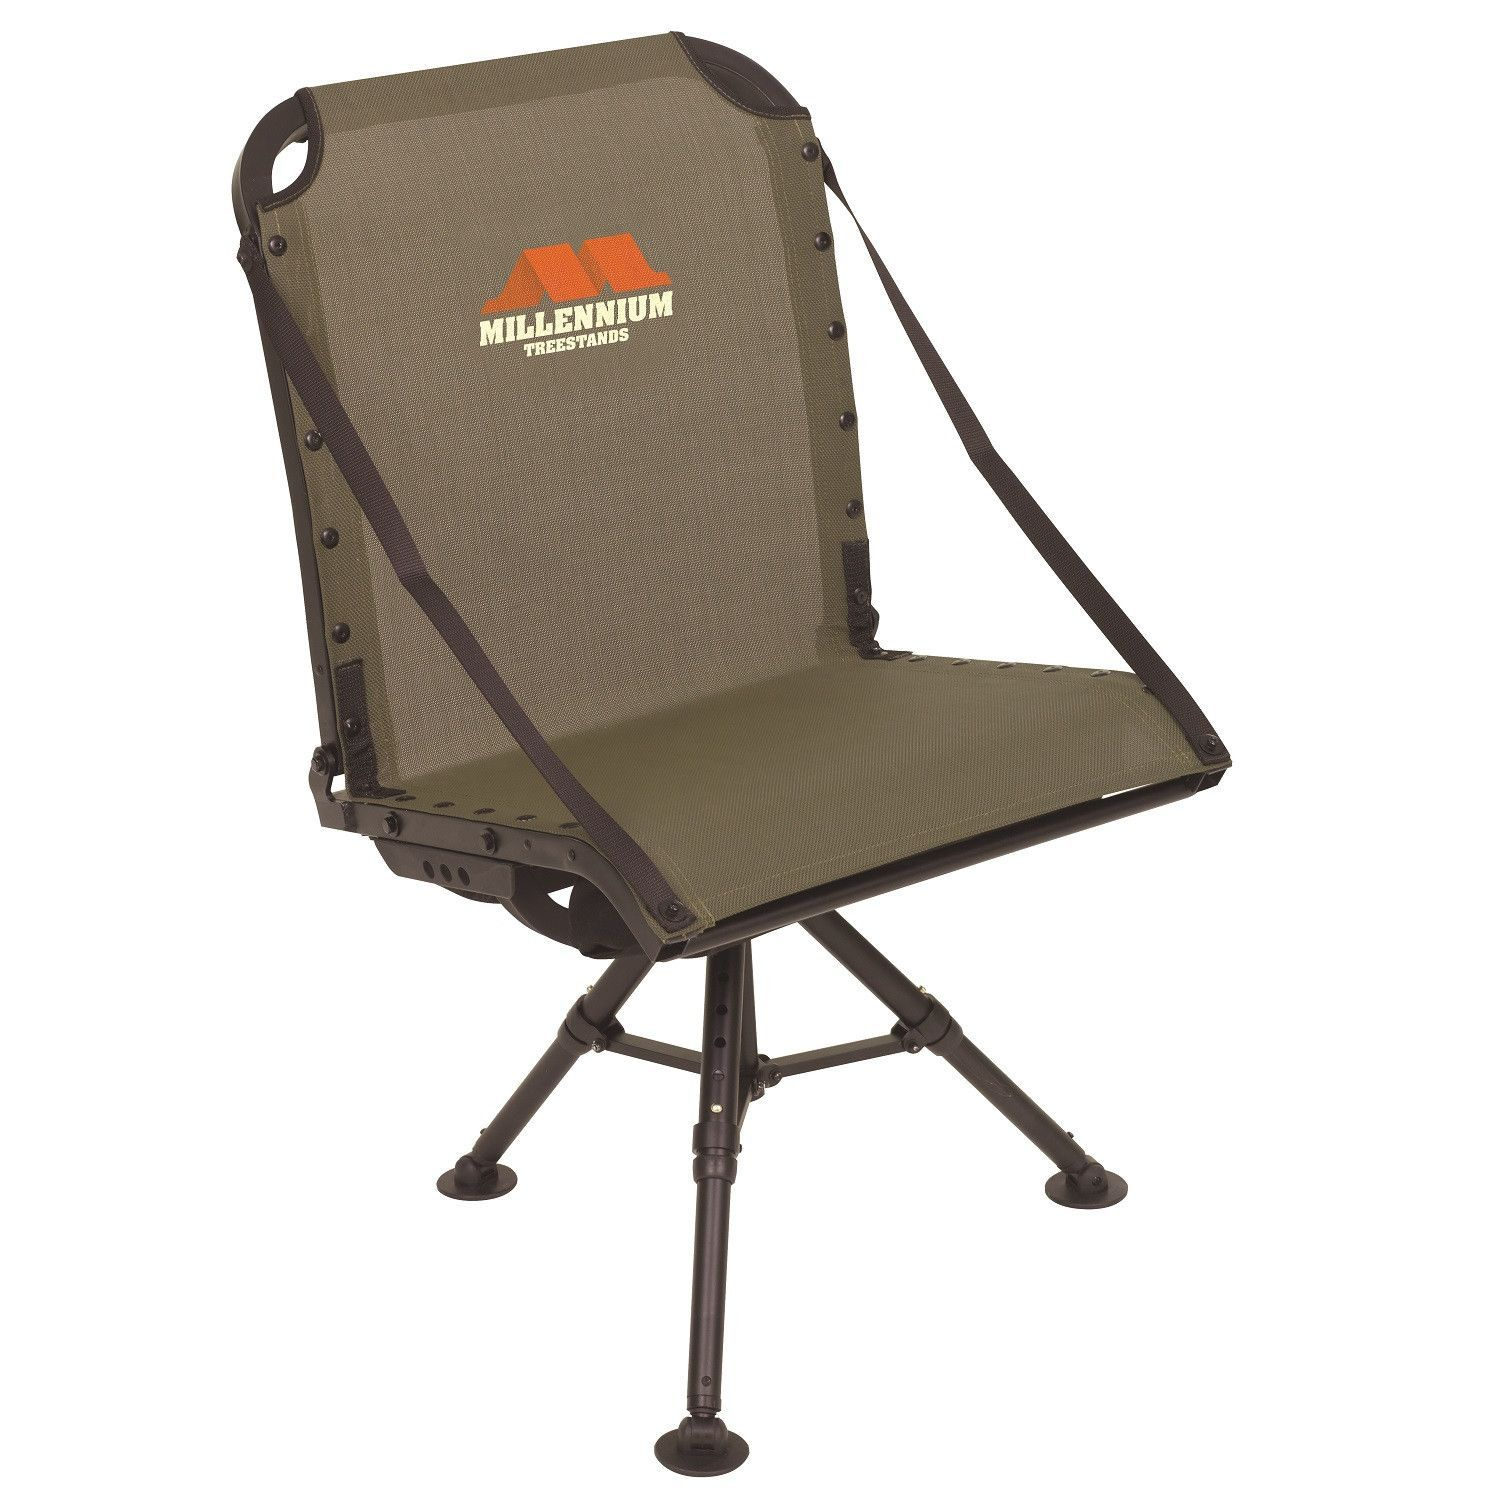 Millennium Blind Chair Products Pinterest